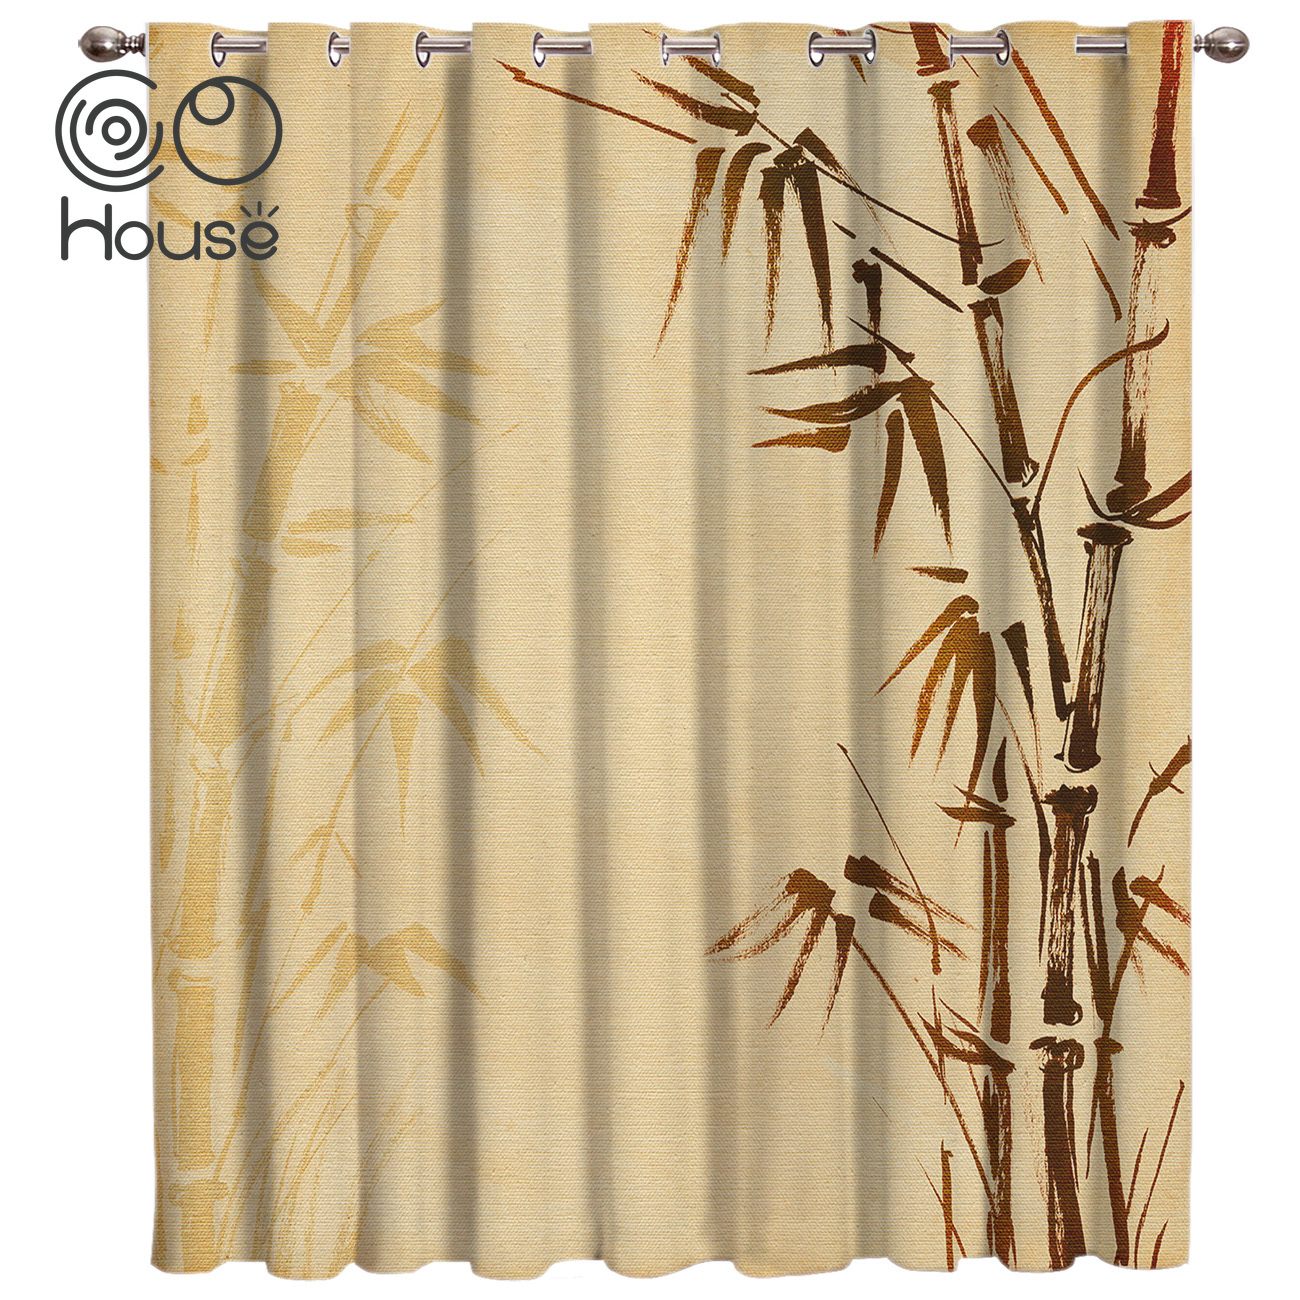 Plant Bamboo Window Treatments Curtains Valance Room Curtains Large Window Curtain Rod Decor Outdoor Kitchen Curtains Aliexpress